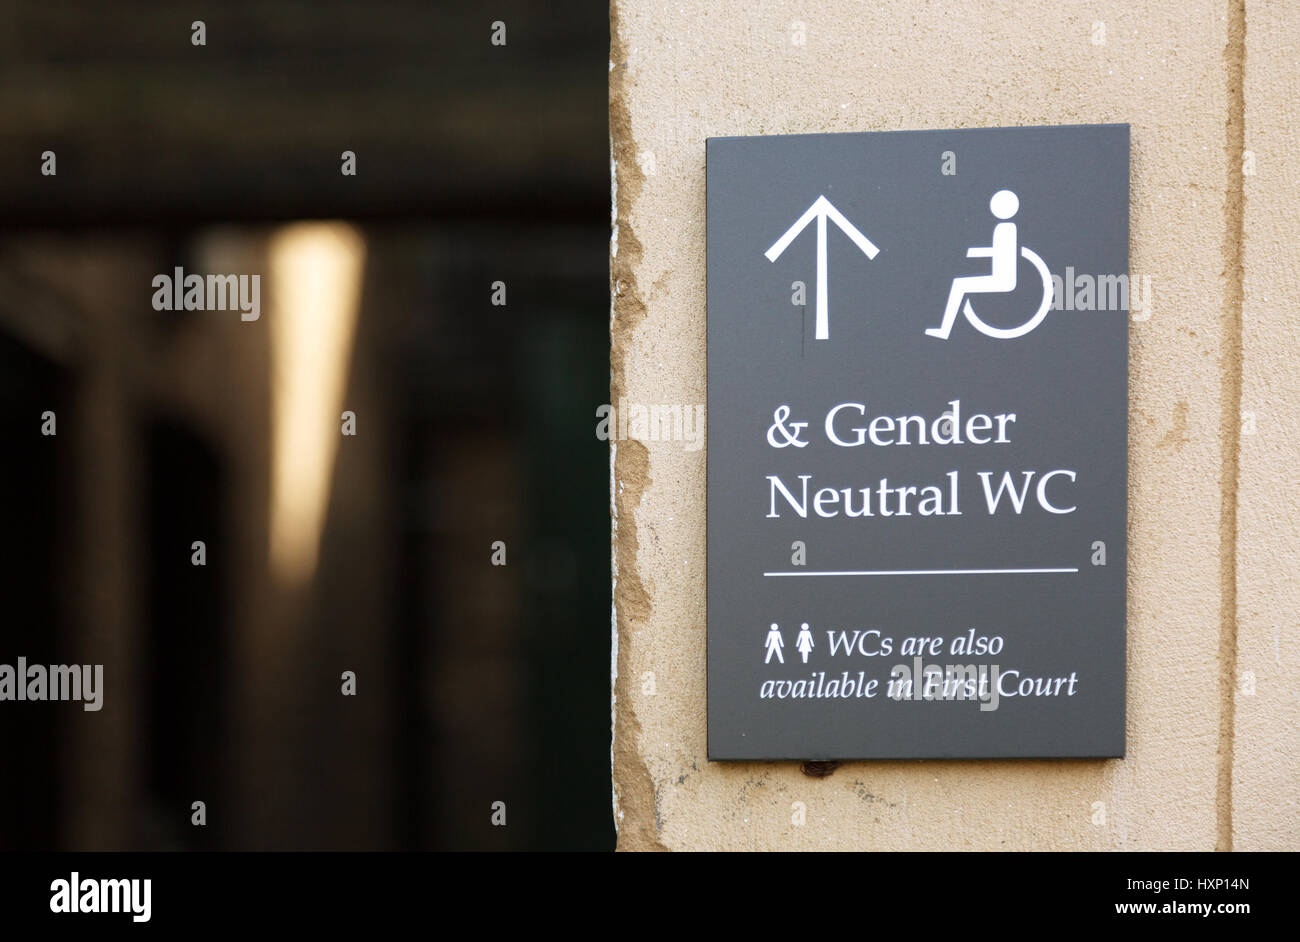 Gender Neutral Stock Photos & Gender Neutral Stock Images - Alamy